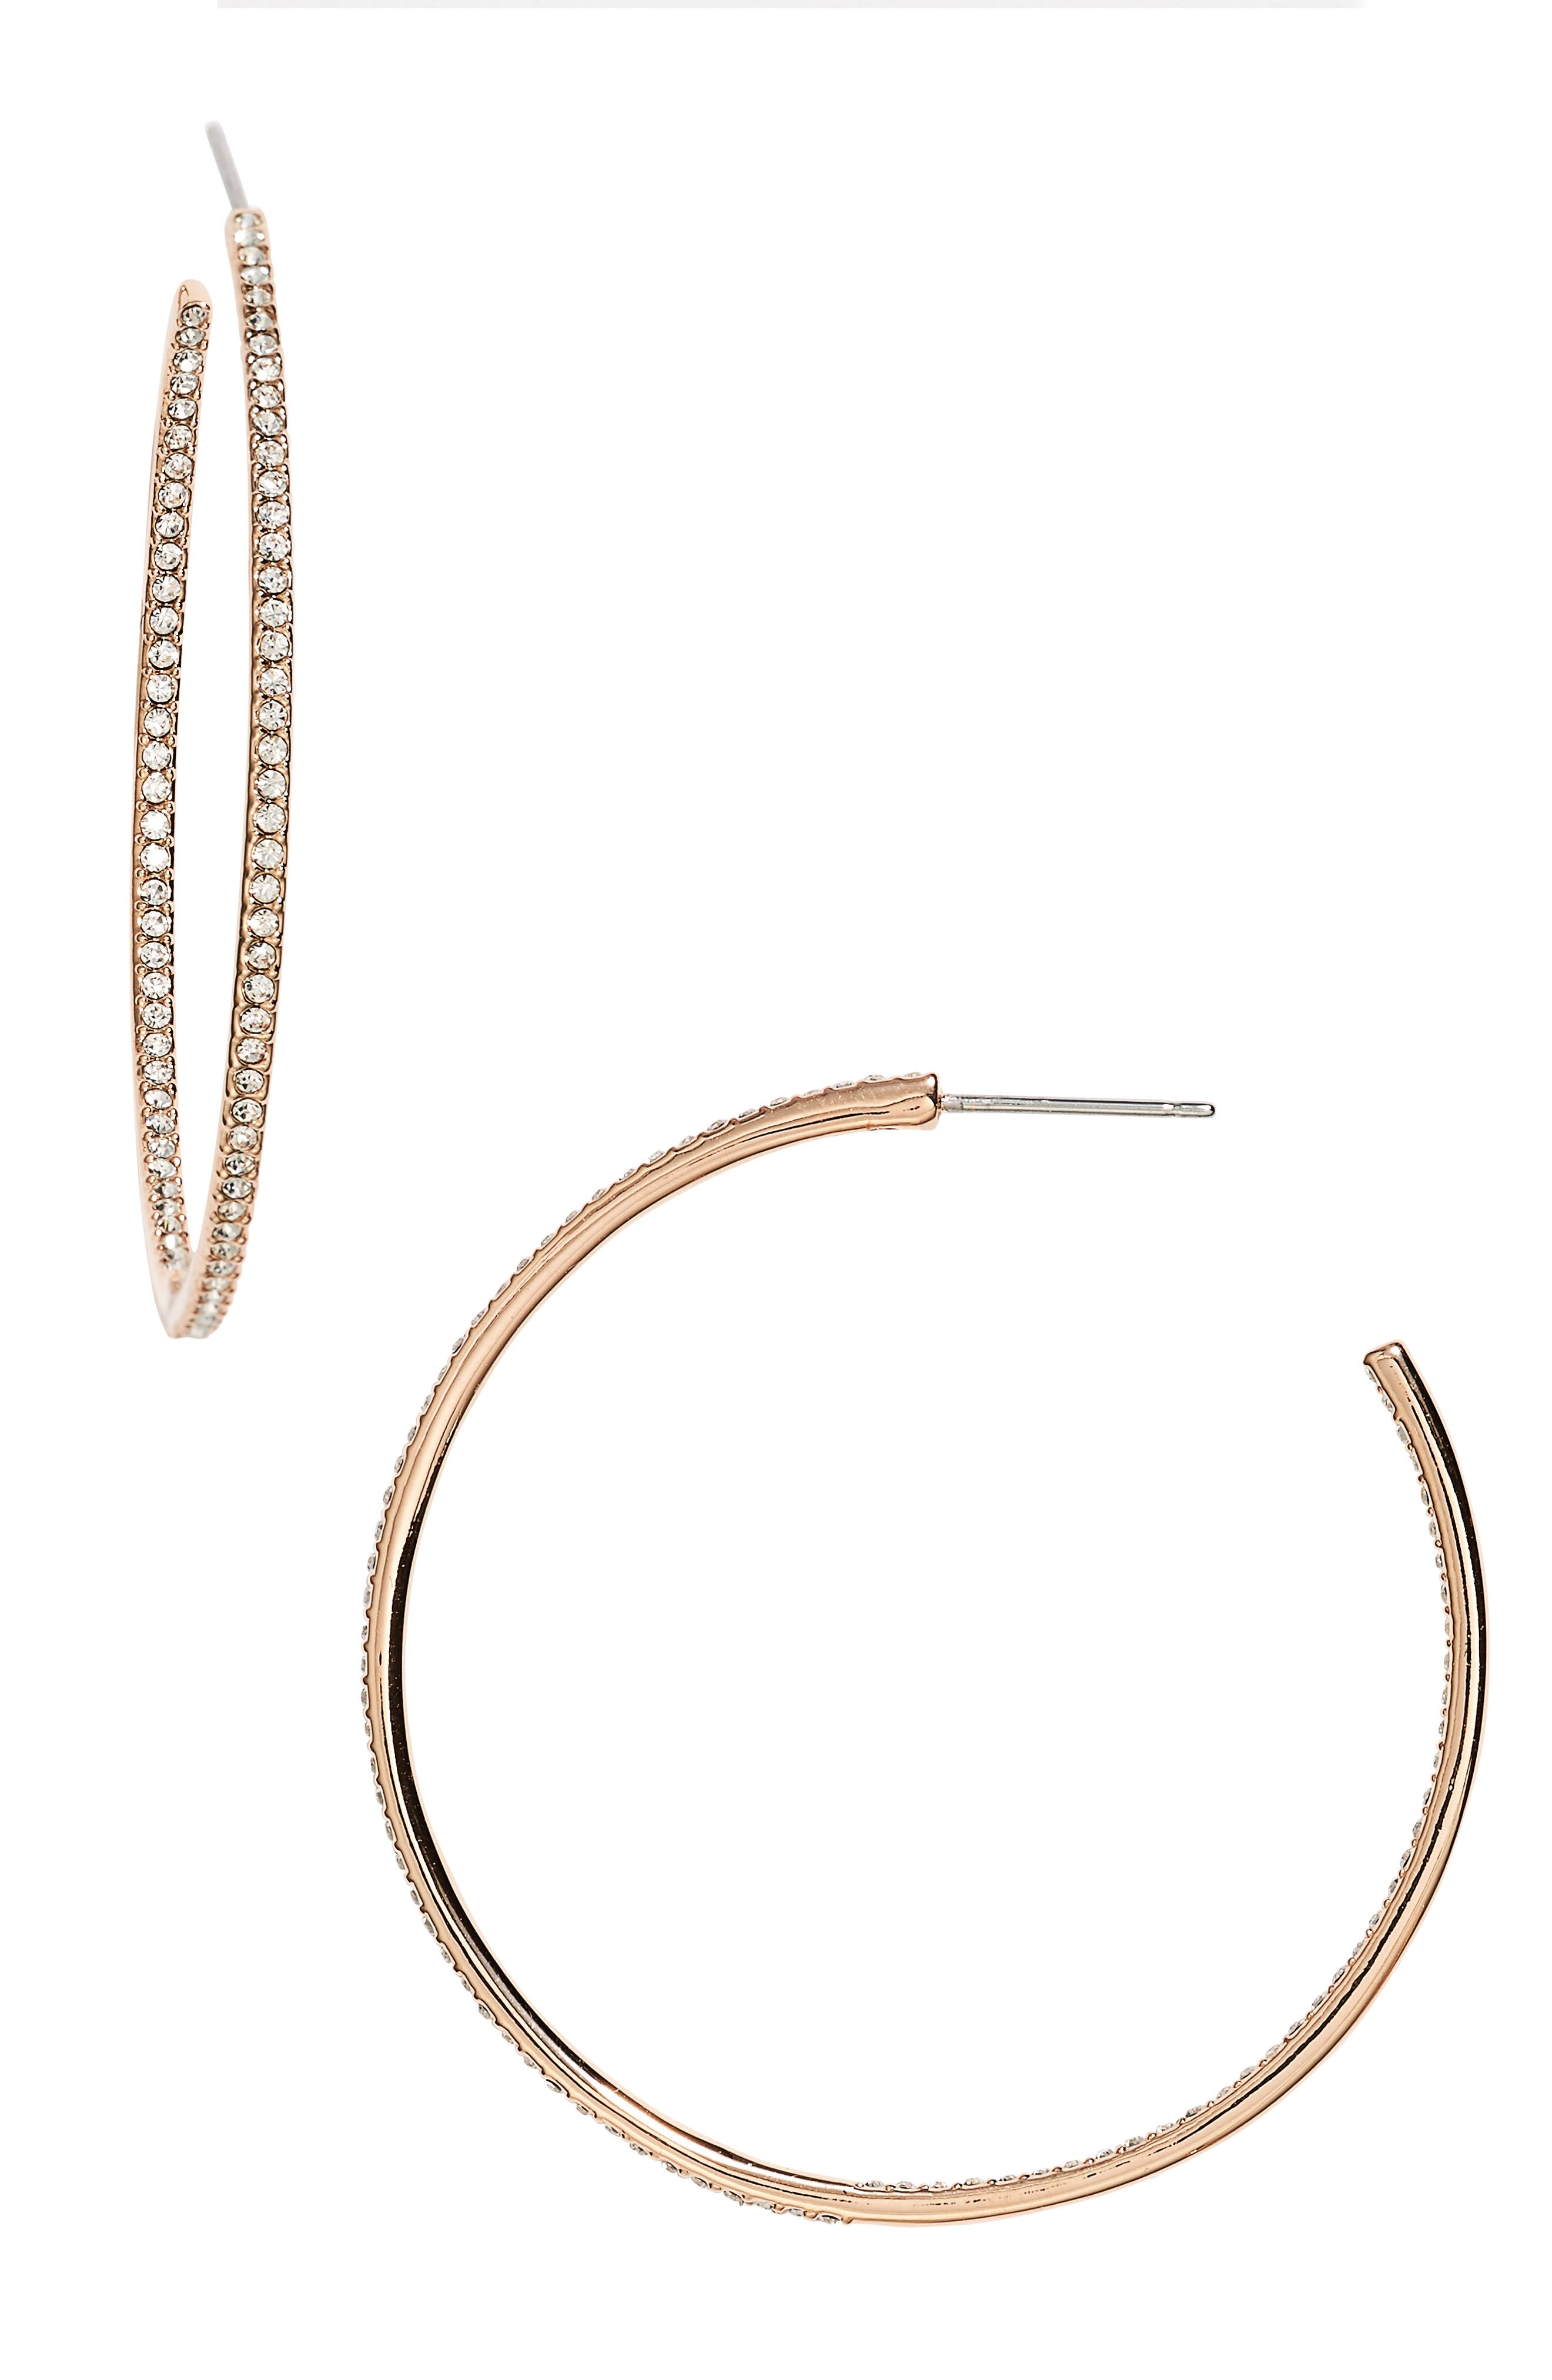 Medium Inside Out Hoop Earrings,                         Main,                         color, ROSE GOLD